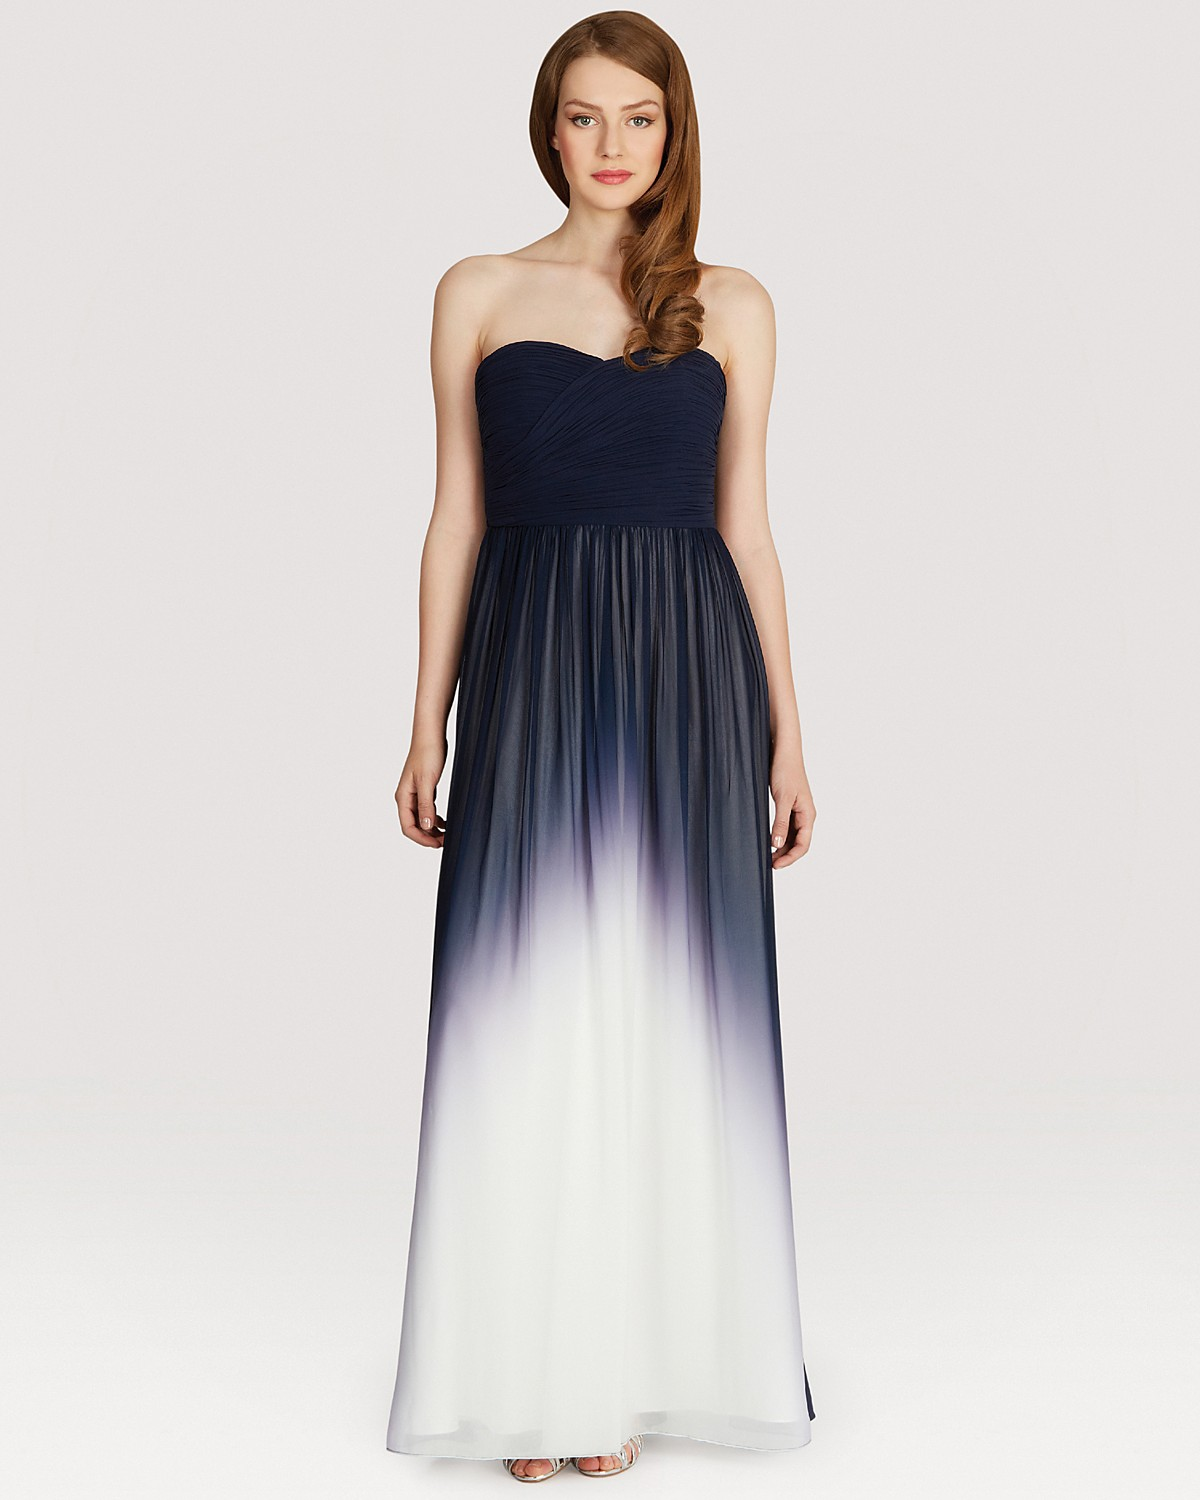 Coast Dip Dye Gown - Greata | Bloomingdale's